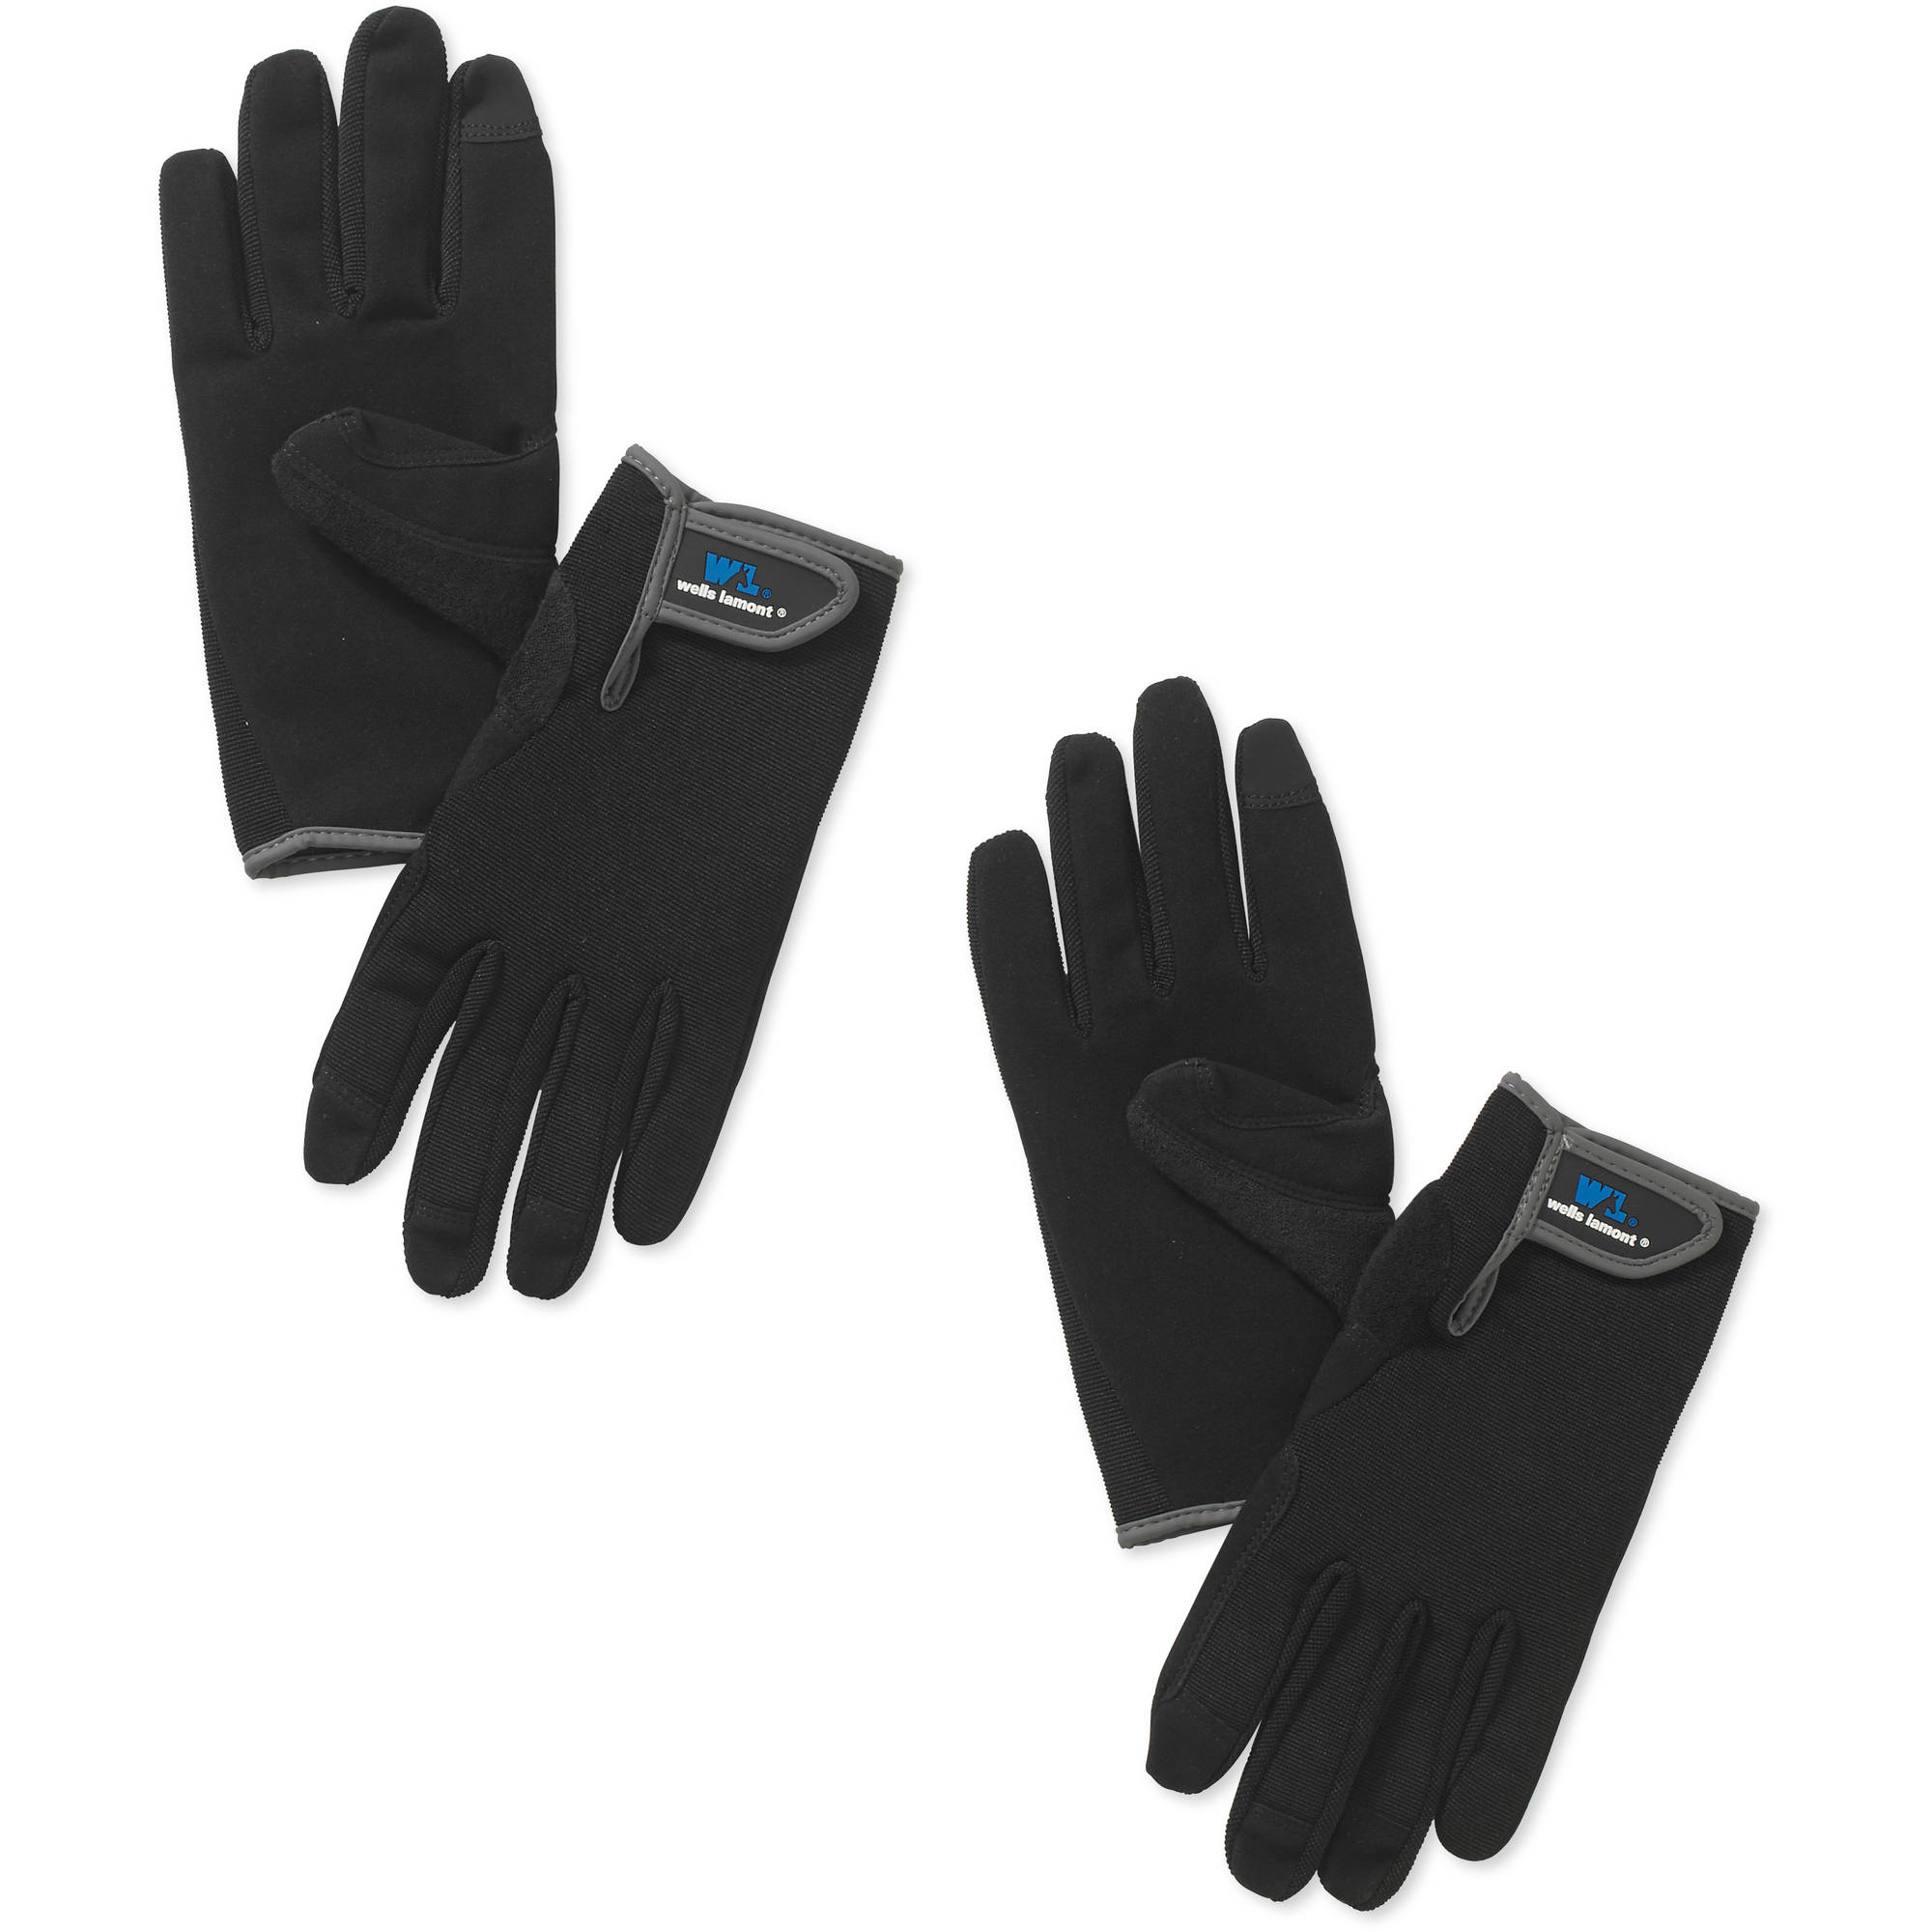 Black leather gloves brisbane - Wells Lamont Synthetic Leather High Dexterity Work Gloves With Touch Screen Technology Black 2